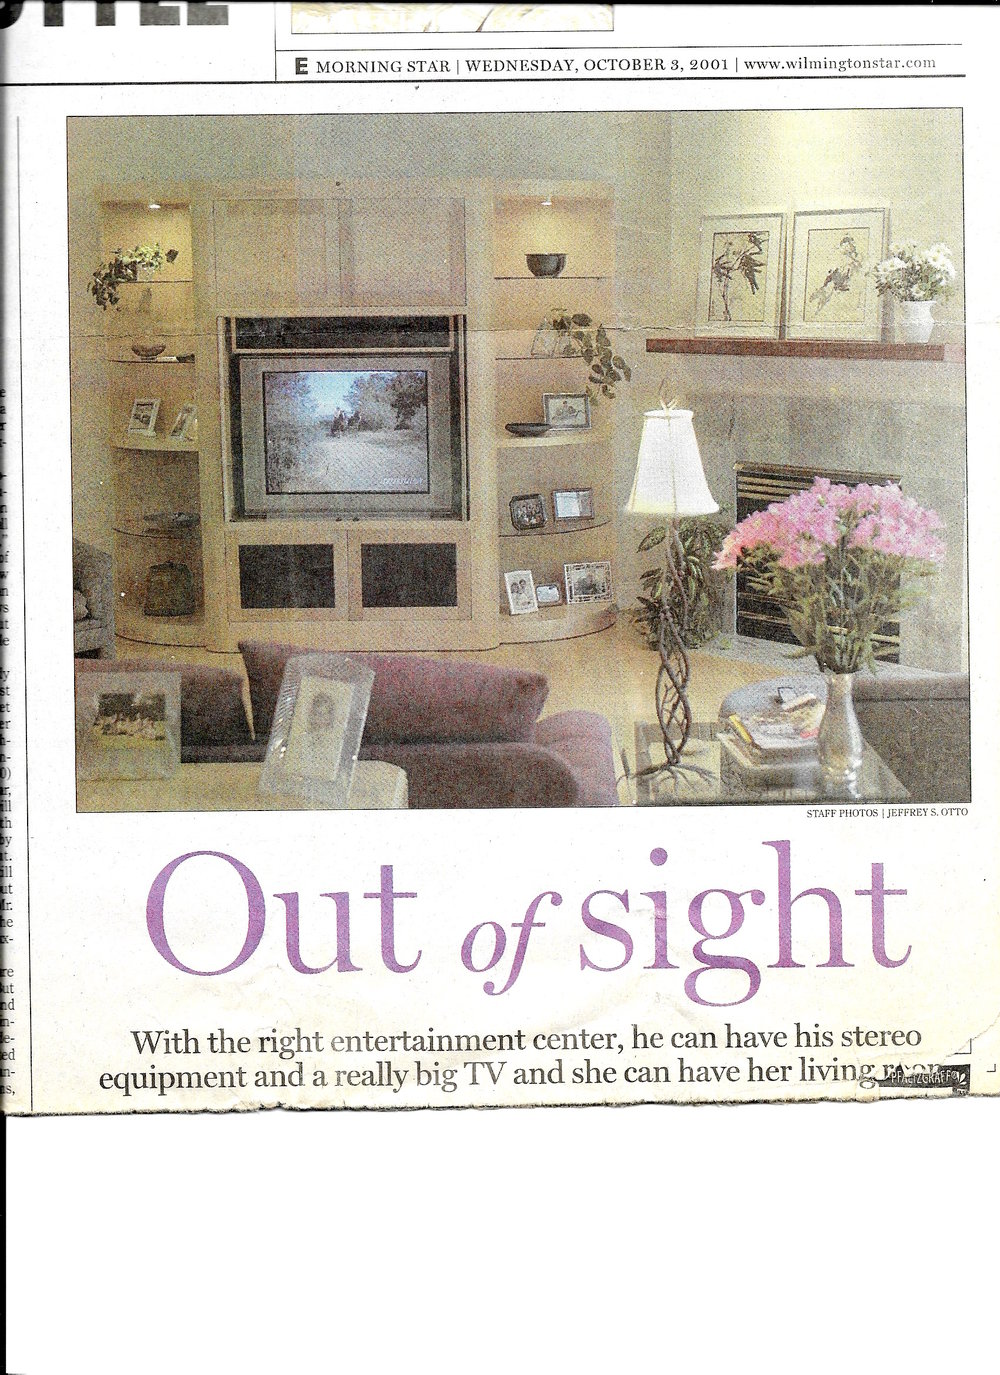 Article in Star News on October 3, 2001. http://www.starnewsonline.com/news/20011003/home-style--out-of-sight-with-the-right-entertainment-center-he-can-have-his-stereo-equipment-and-a-really-big-tv-and-she-can-have-her-living-room